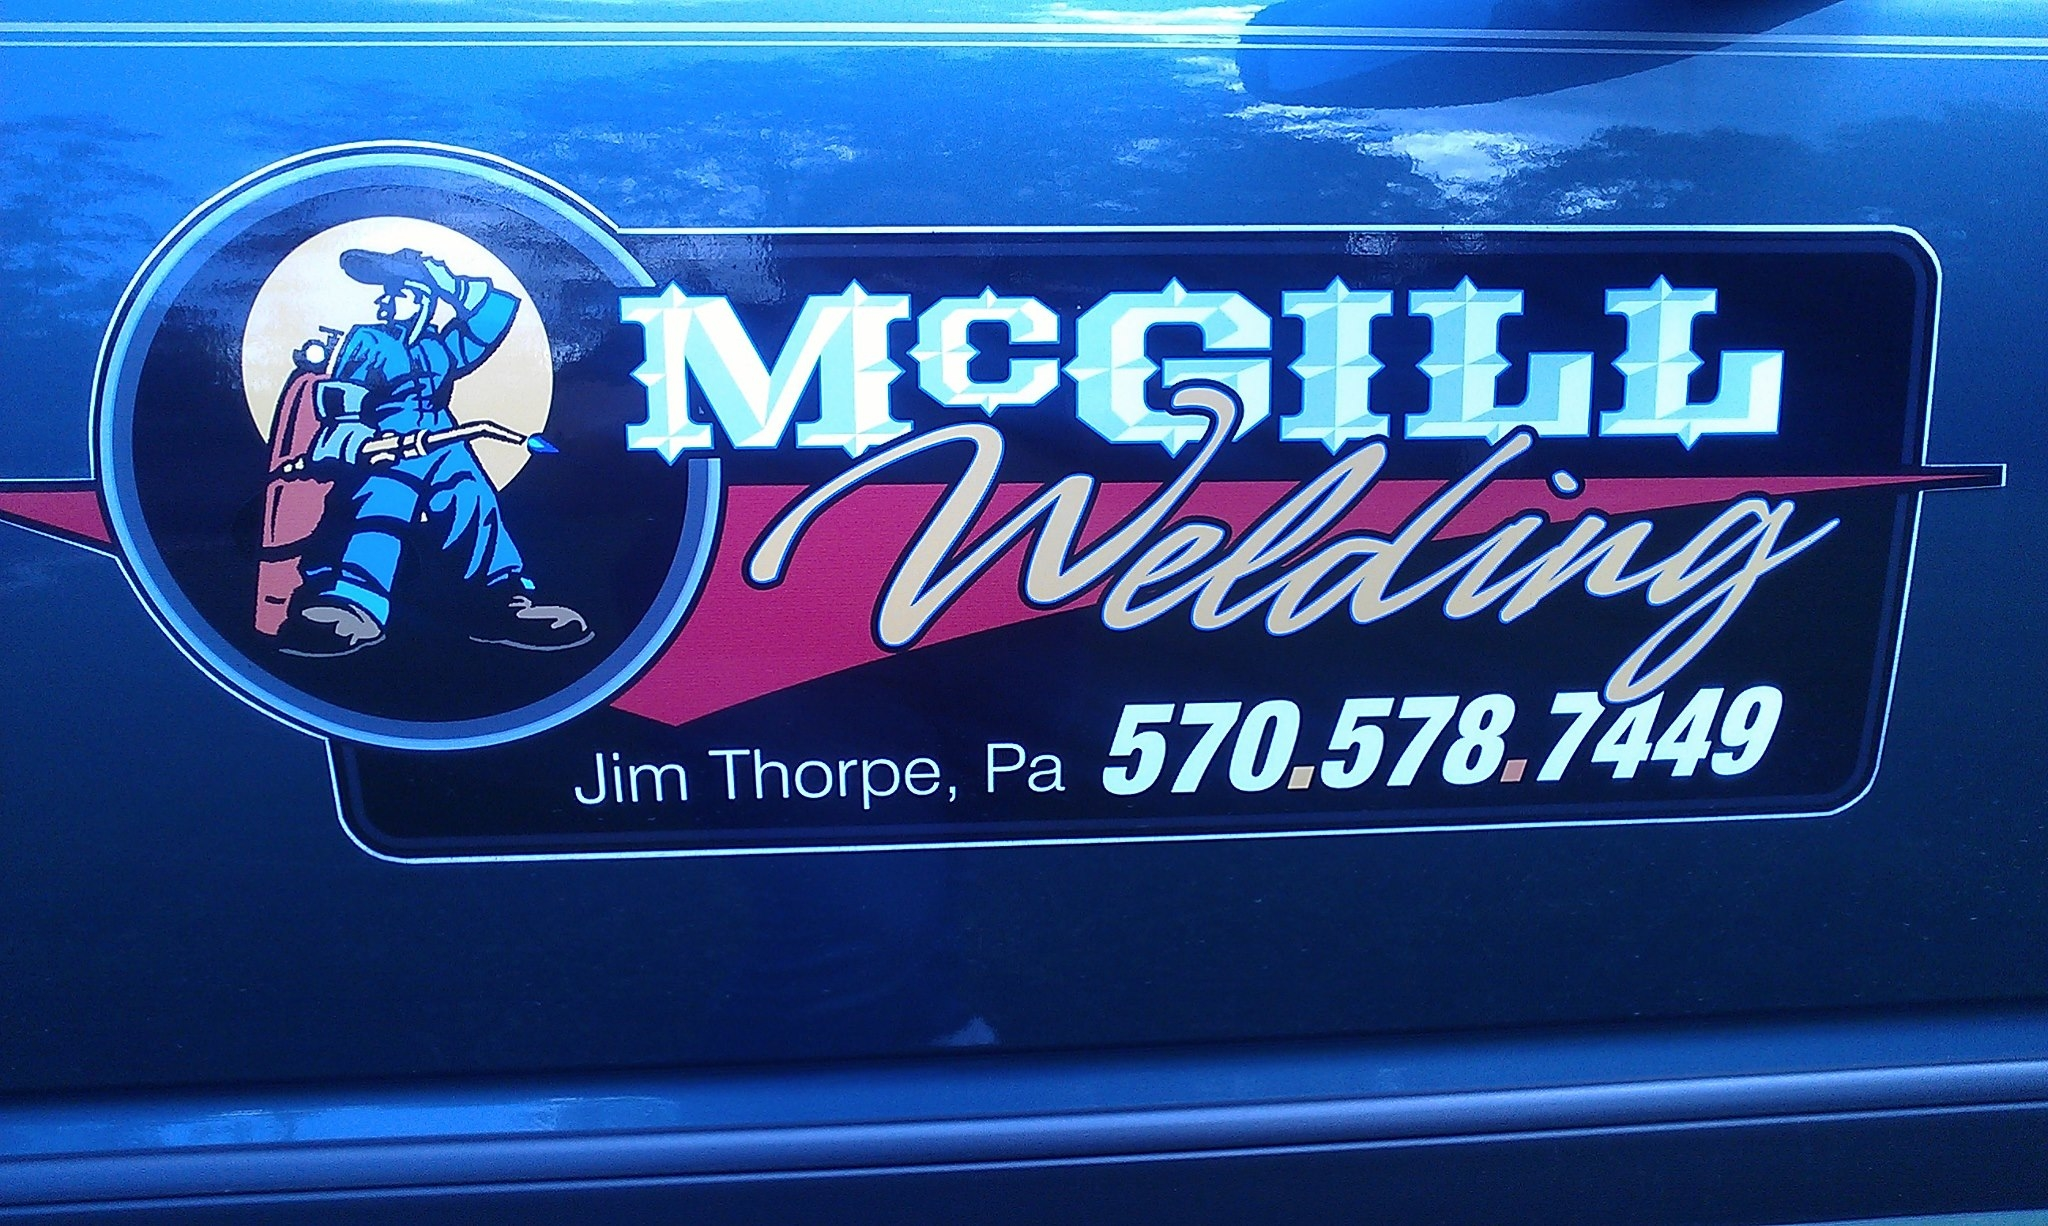 Mcgill Welding